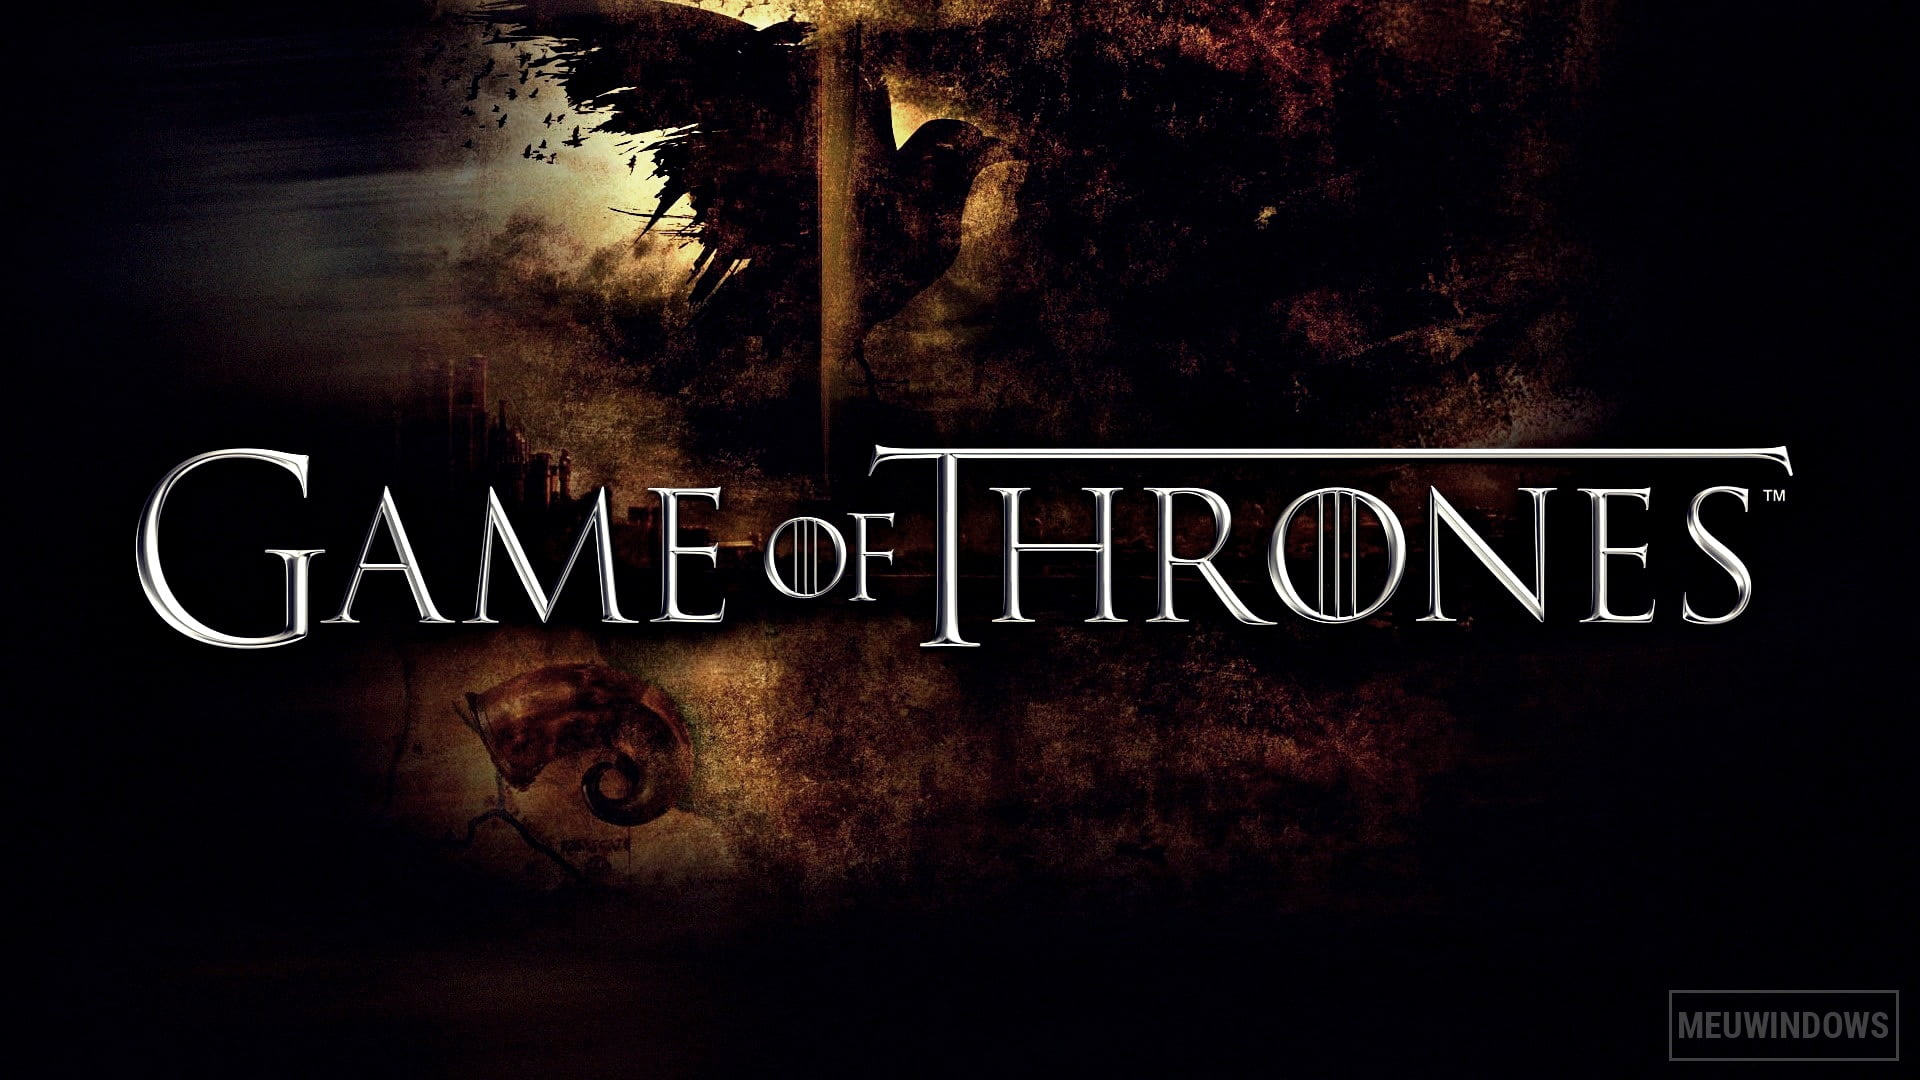 game of thrones hd wallpapers for windows 10